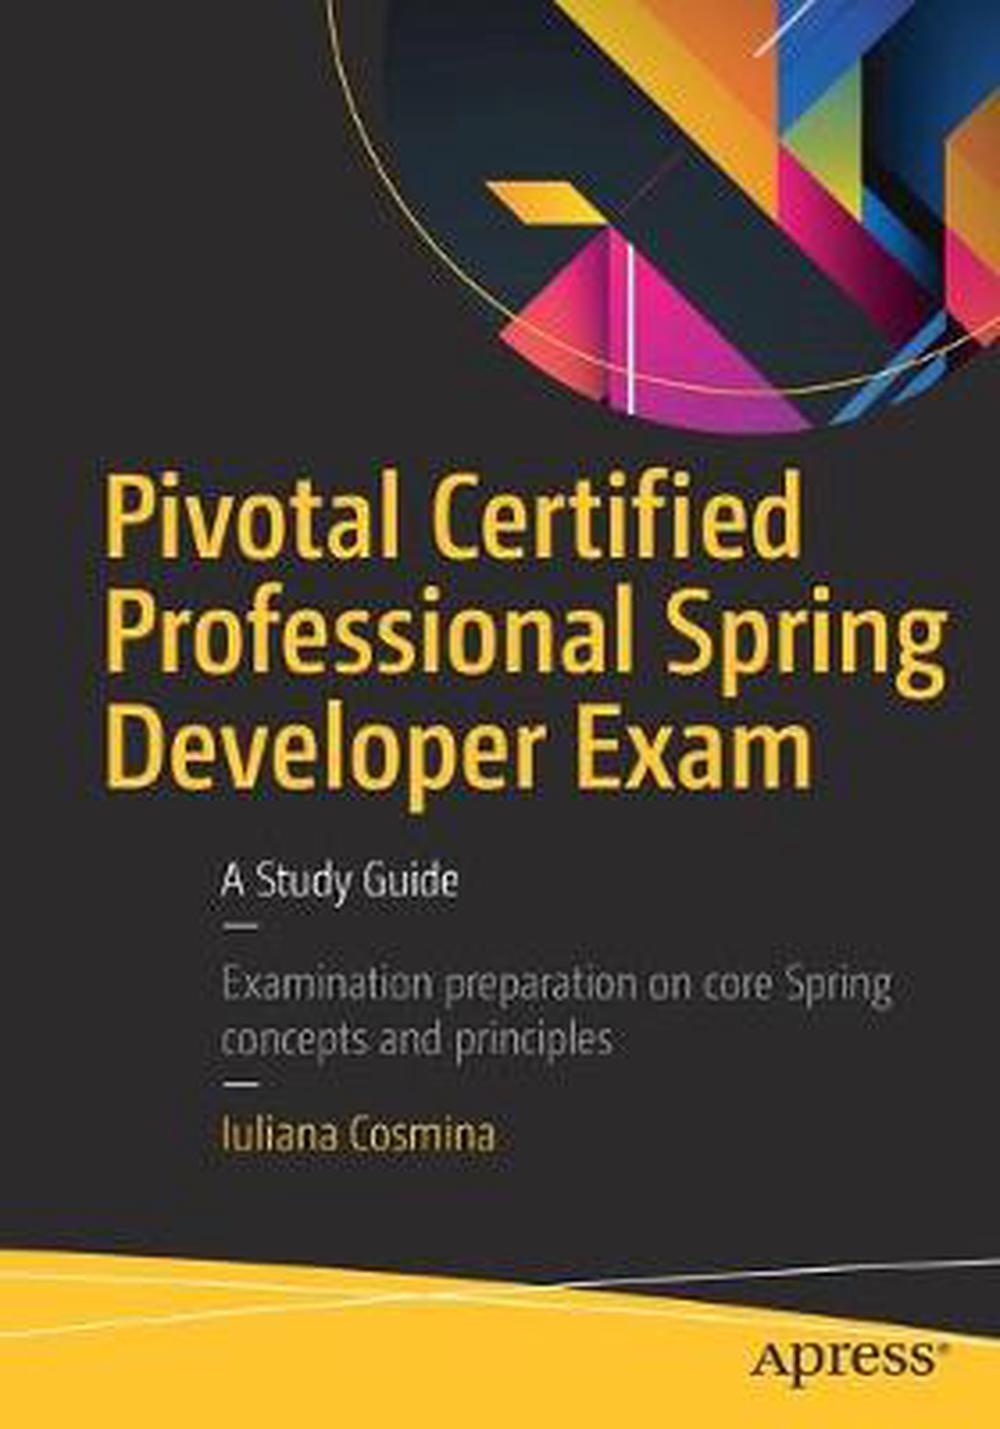 Pivotal Certified Core Spring Developer Exam A Study Guide By Jakub